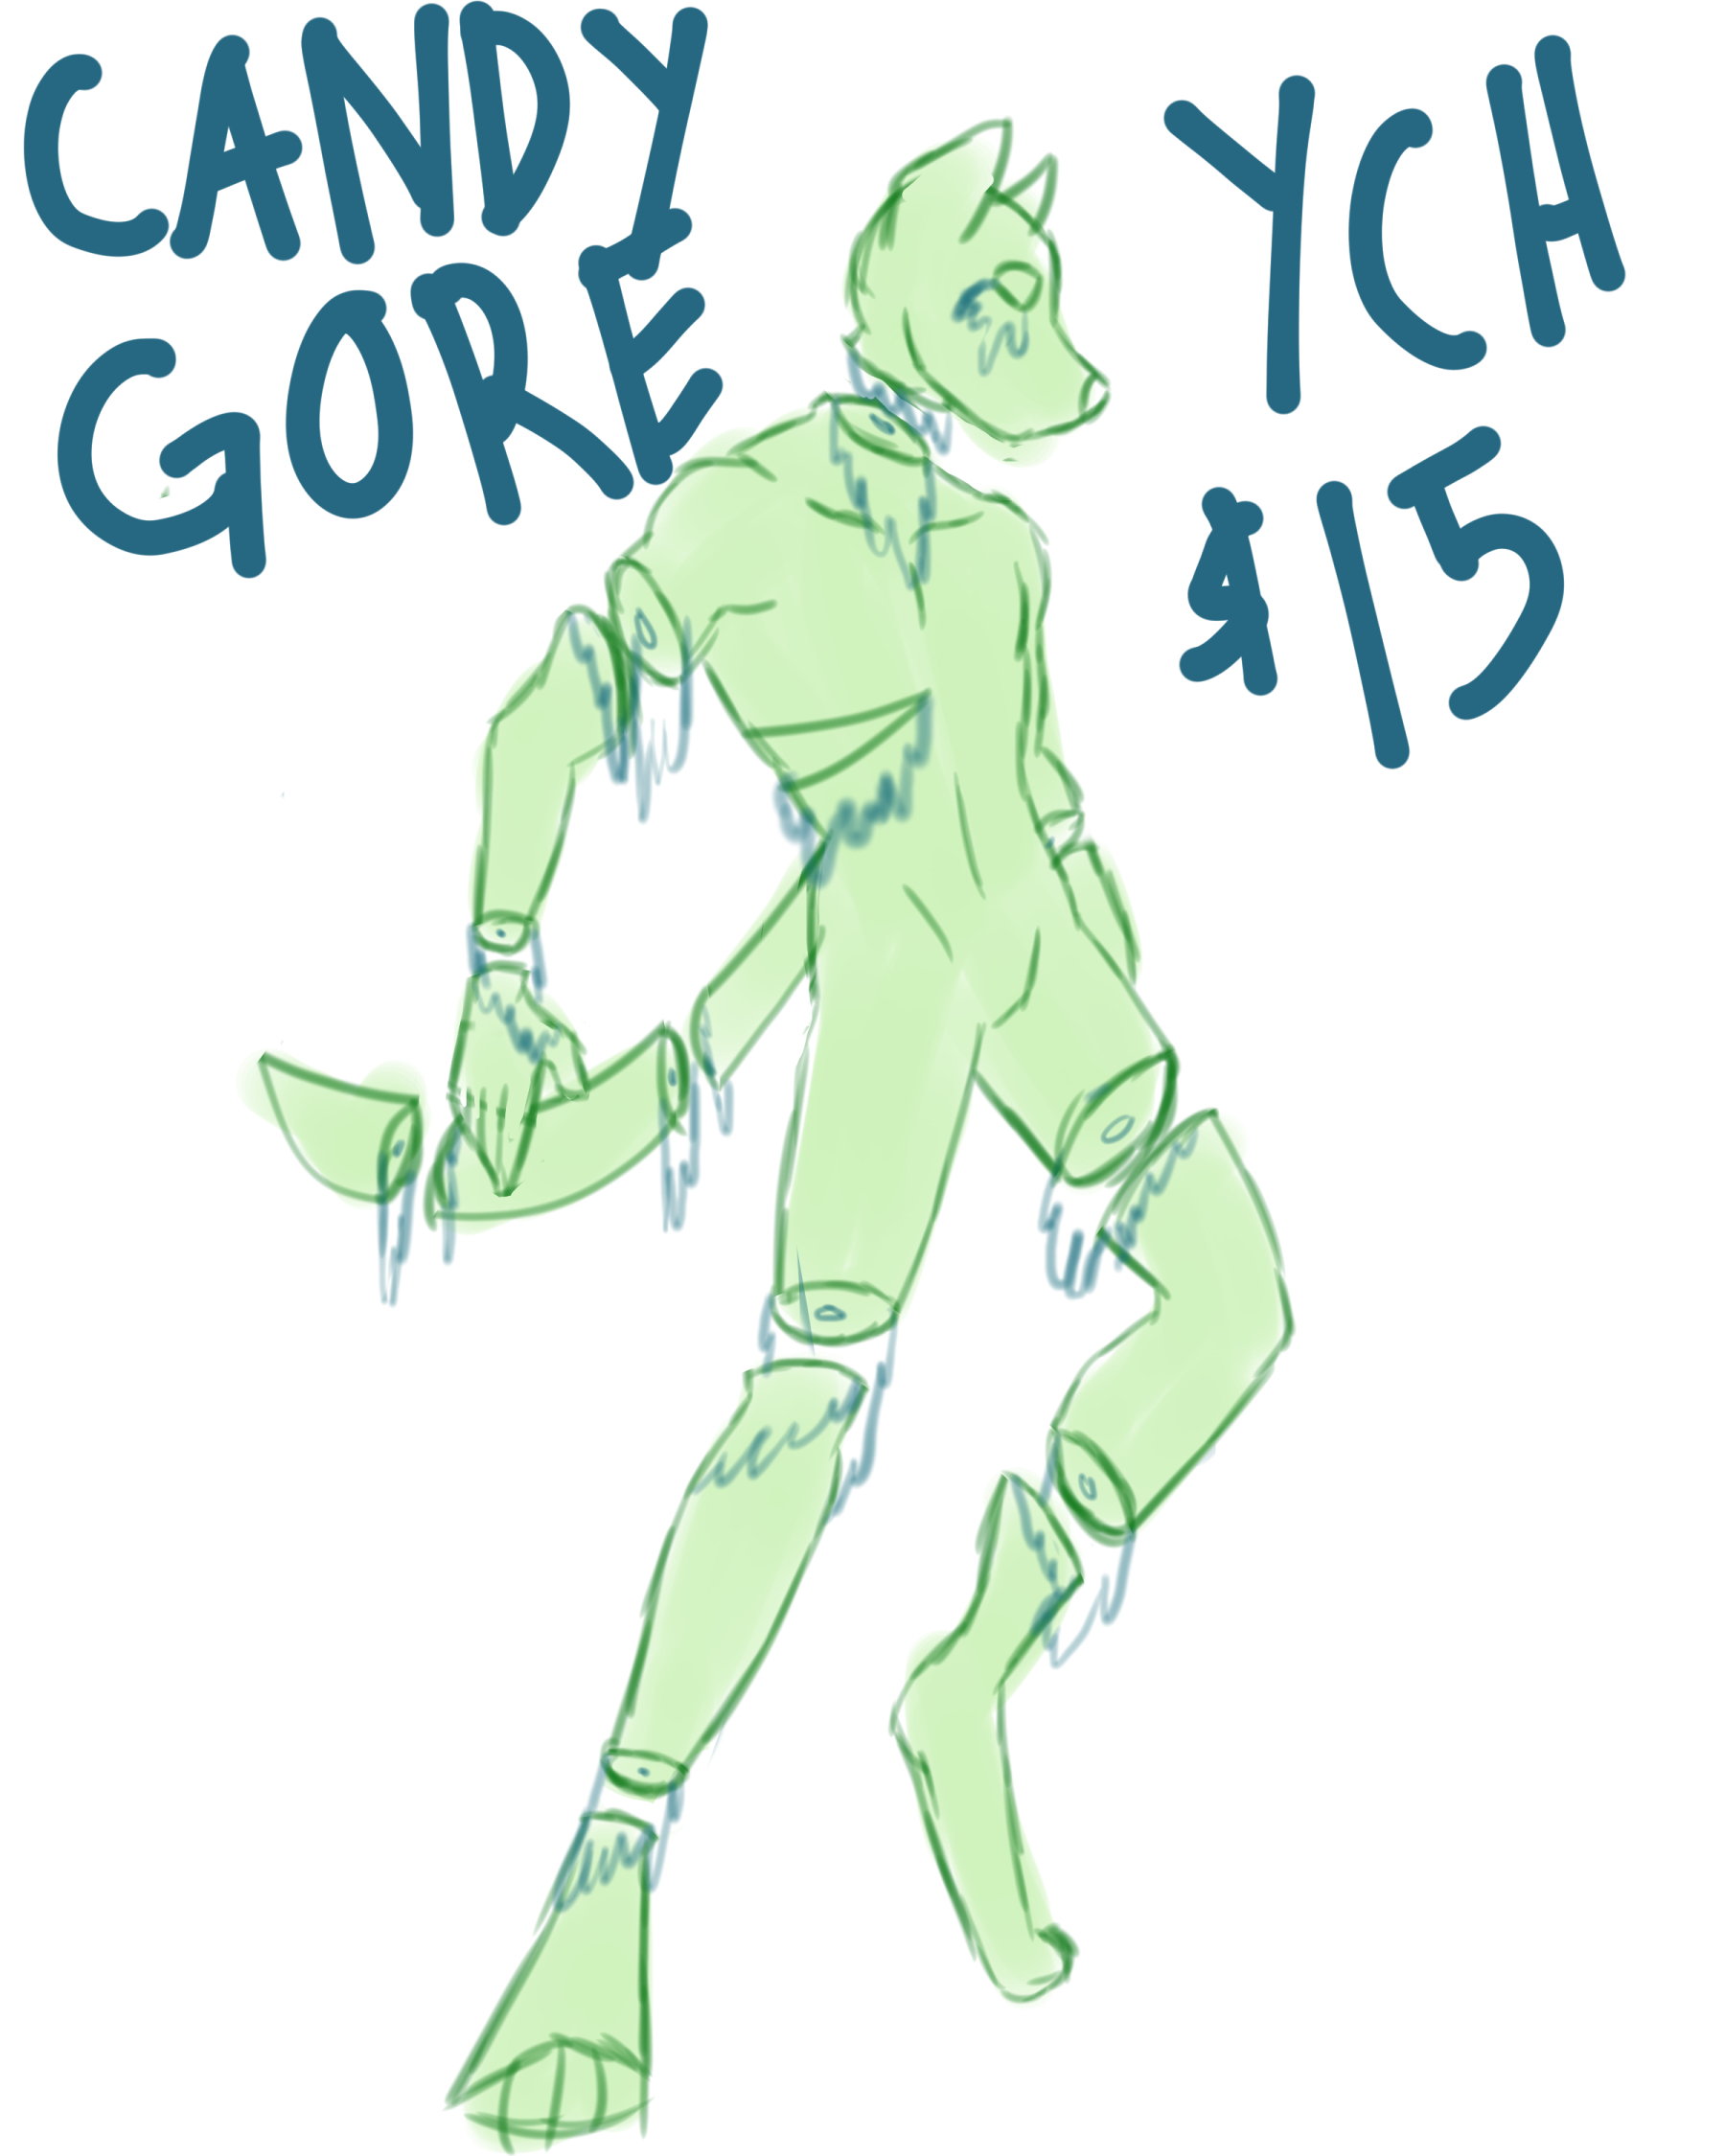 Fn Artwork Candy Gore Ych Darkness accumulated before the draped shop window over which hang an oversized candy cane, pressing its ear against the cool glass. fn artwork candy gore ych